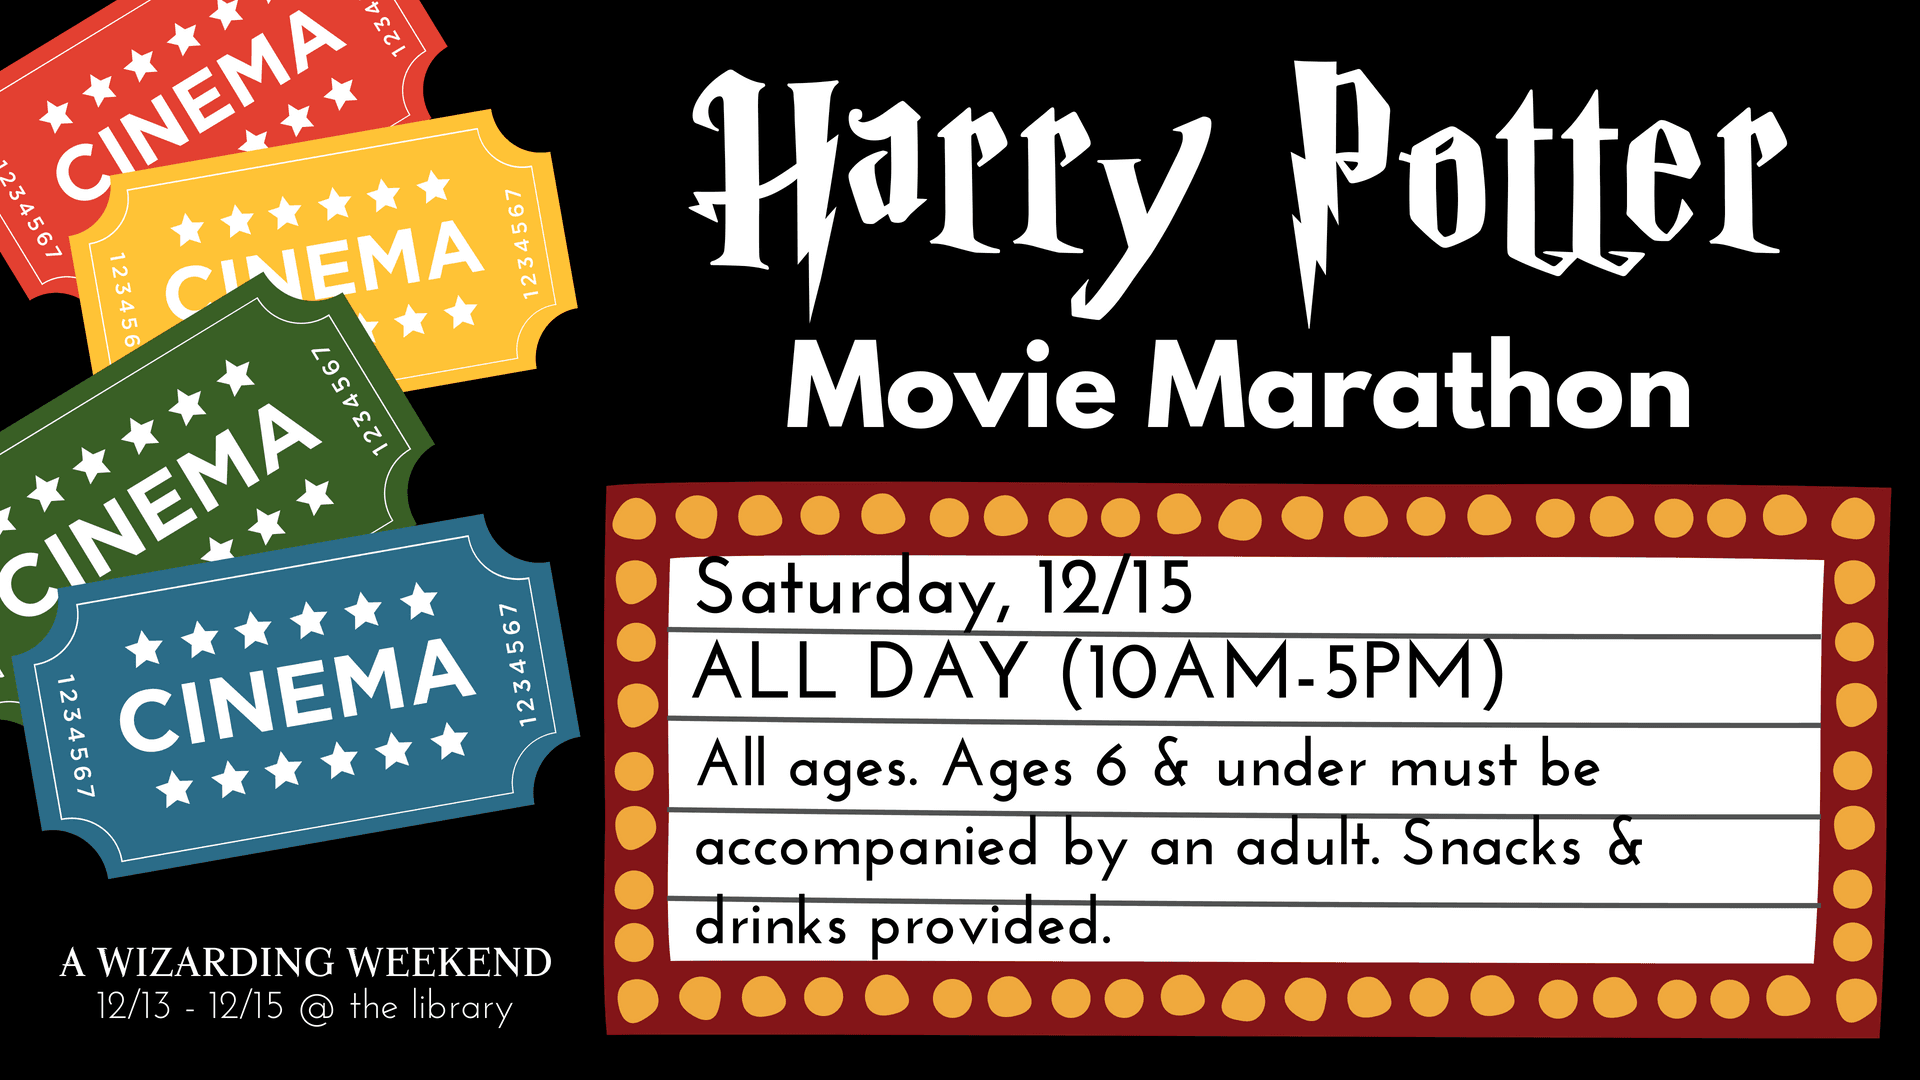 hp movie marathon fb